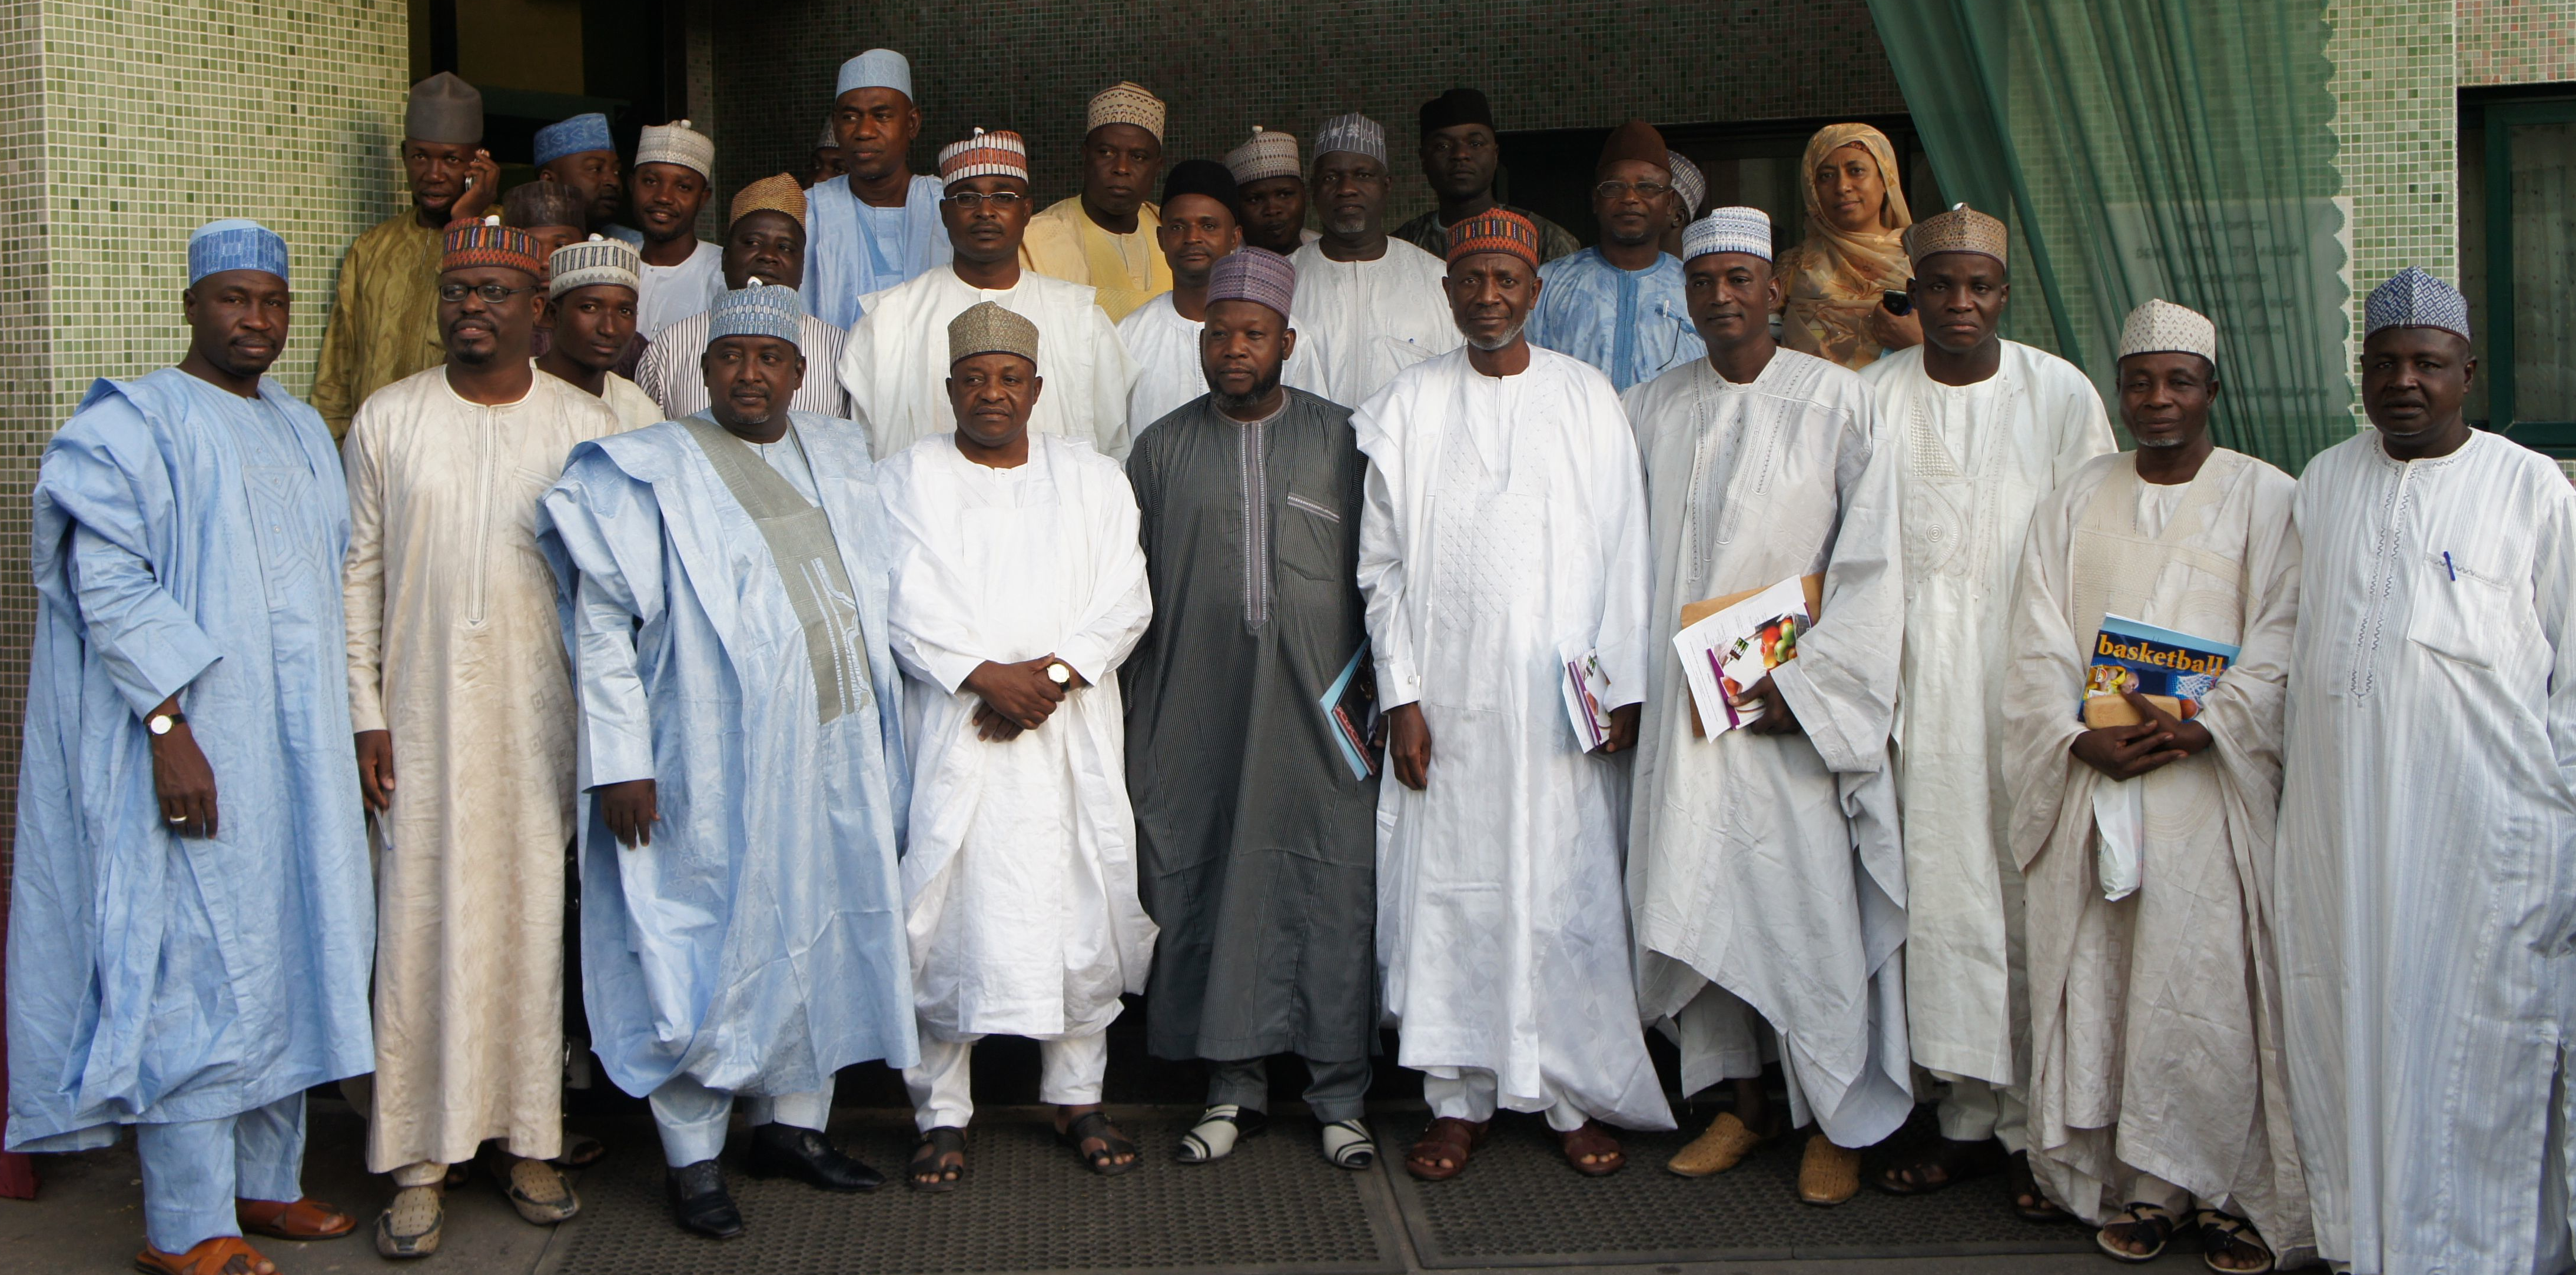 Honorable Commissioner of Health in Zamfara and other members of the State Ministry of Health